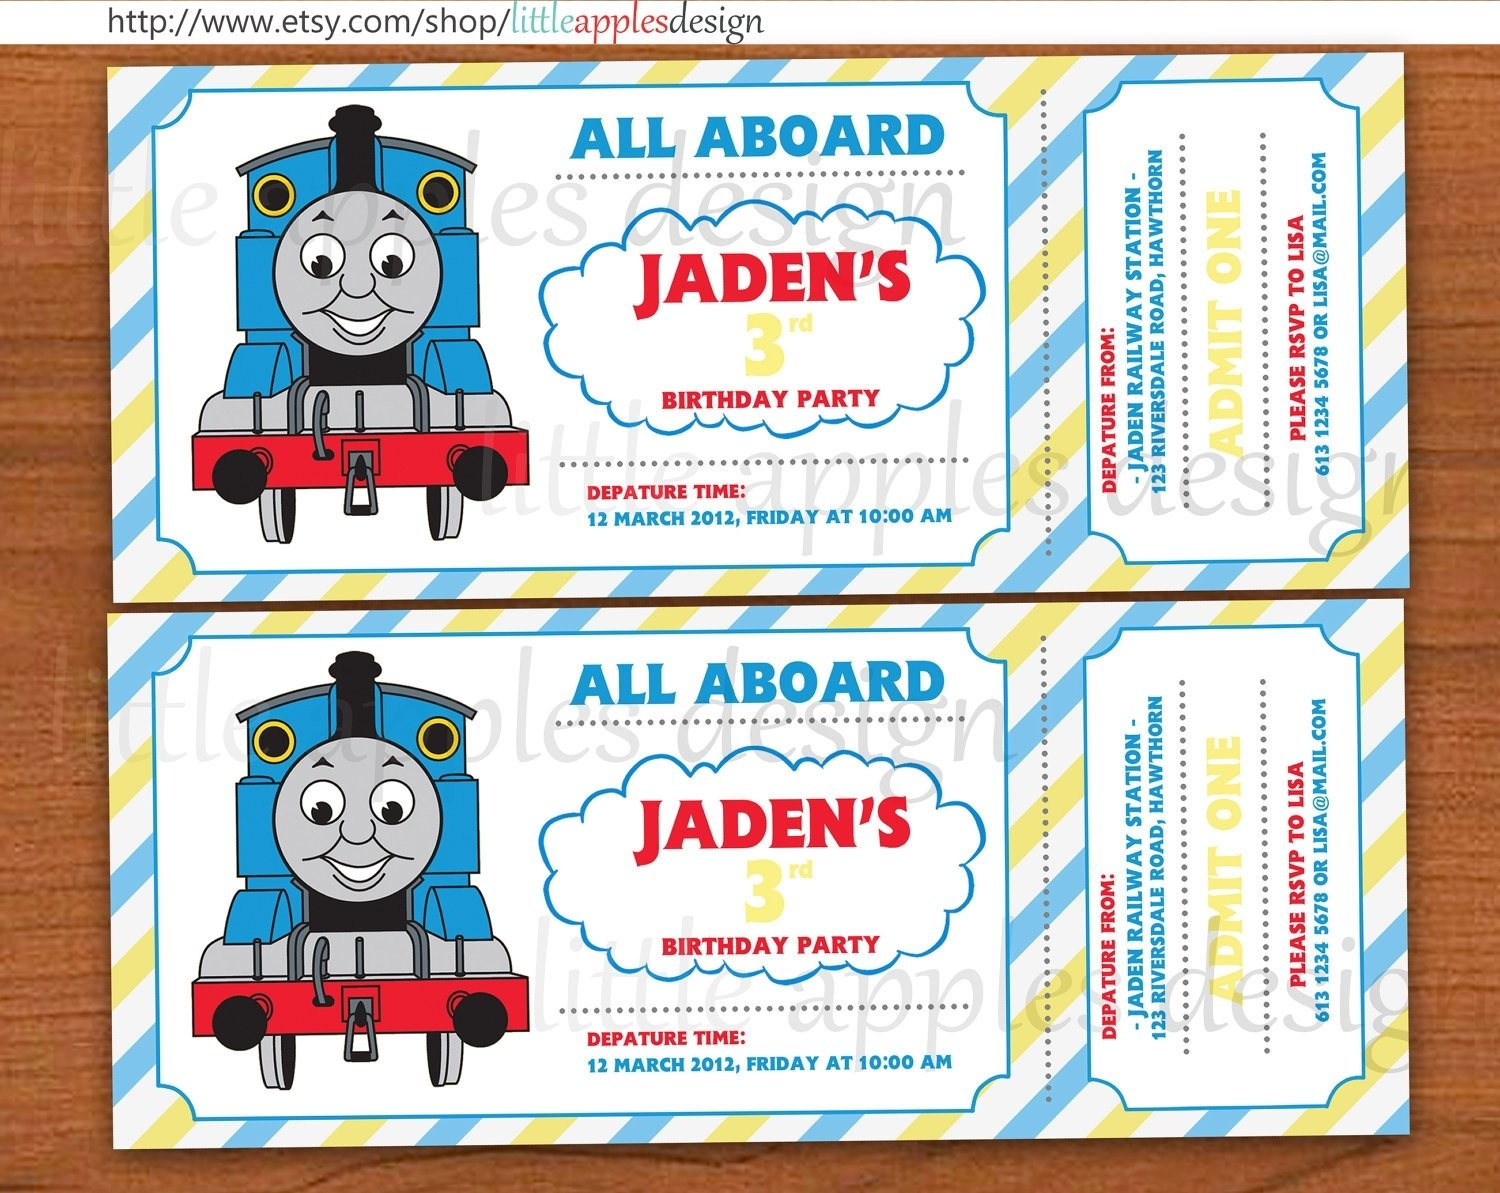 10 Most Recommended Thomas And Friends Birthday Party Ideas thomas and friends birthday party invitations on thomas the tank 2020